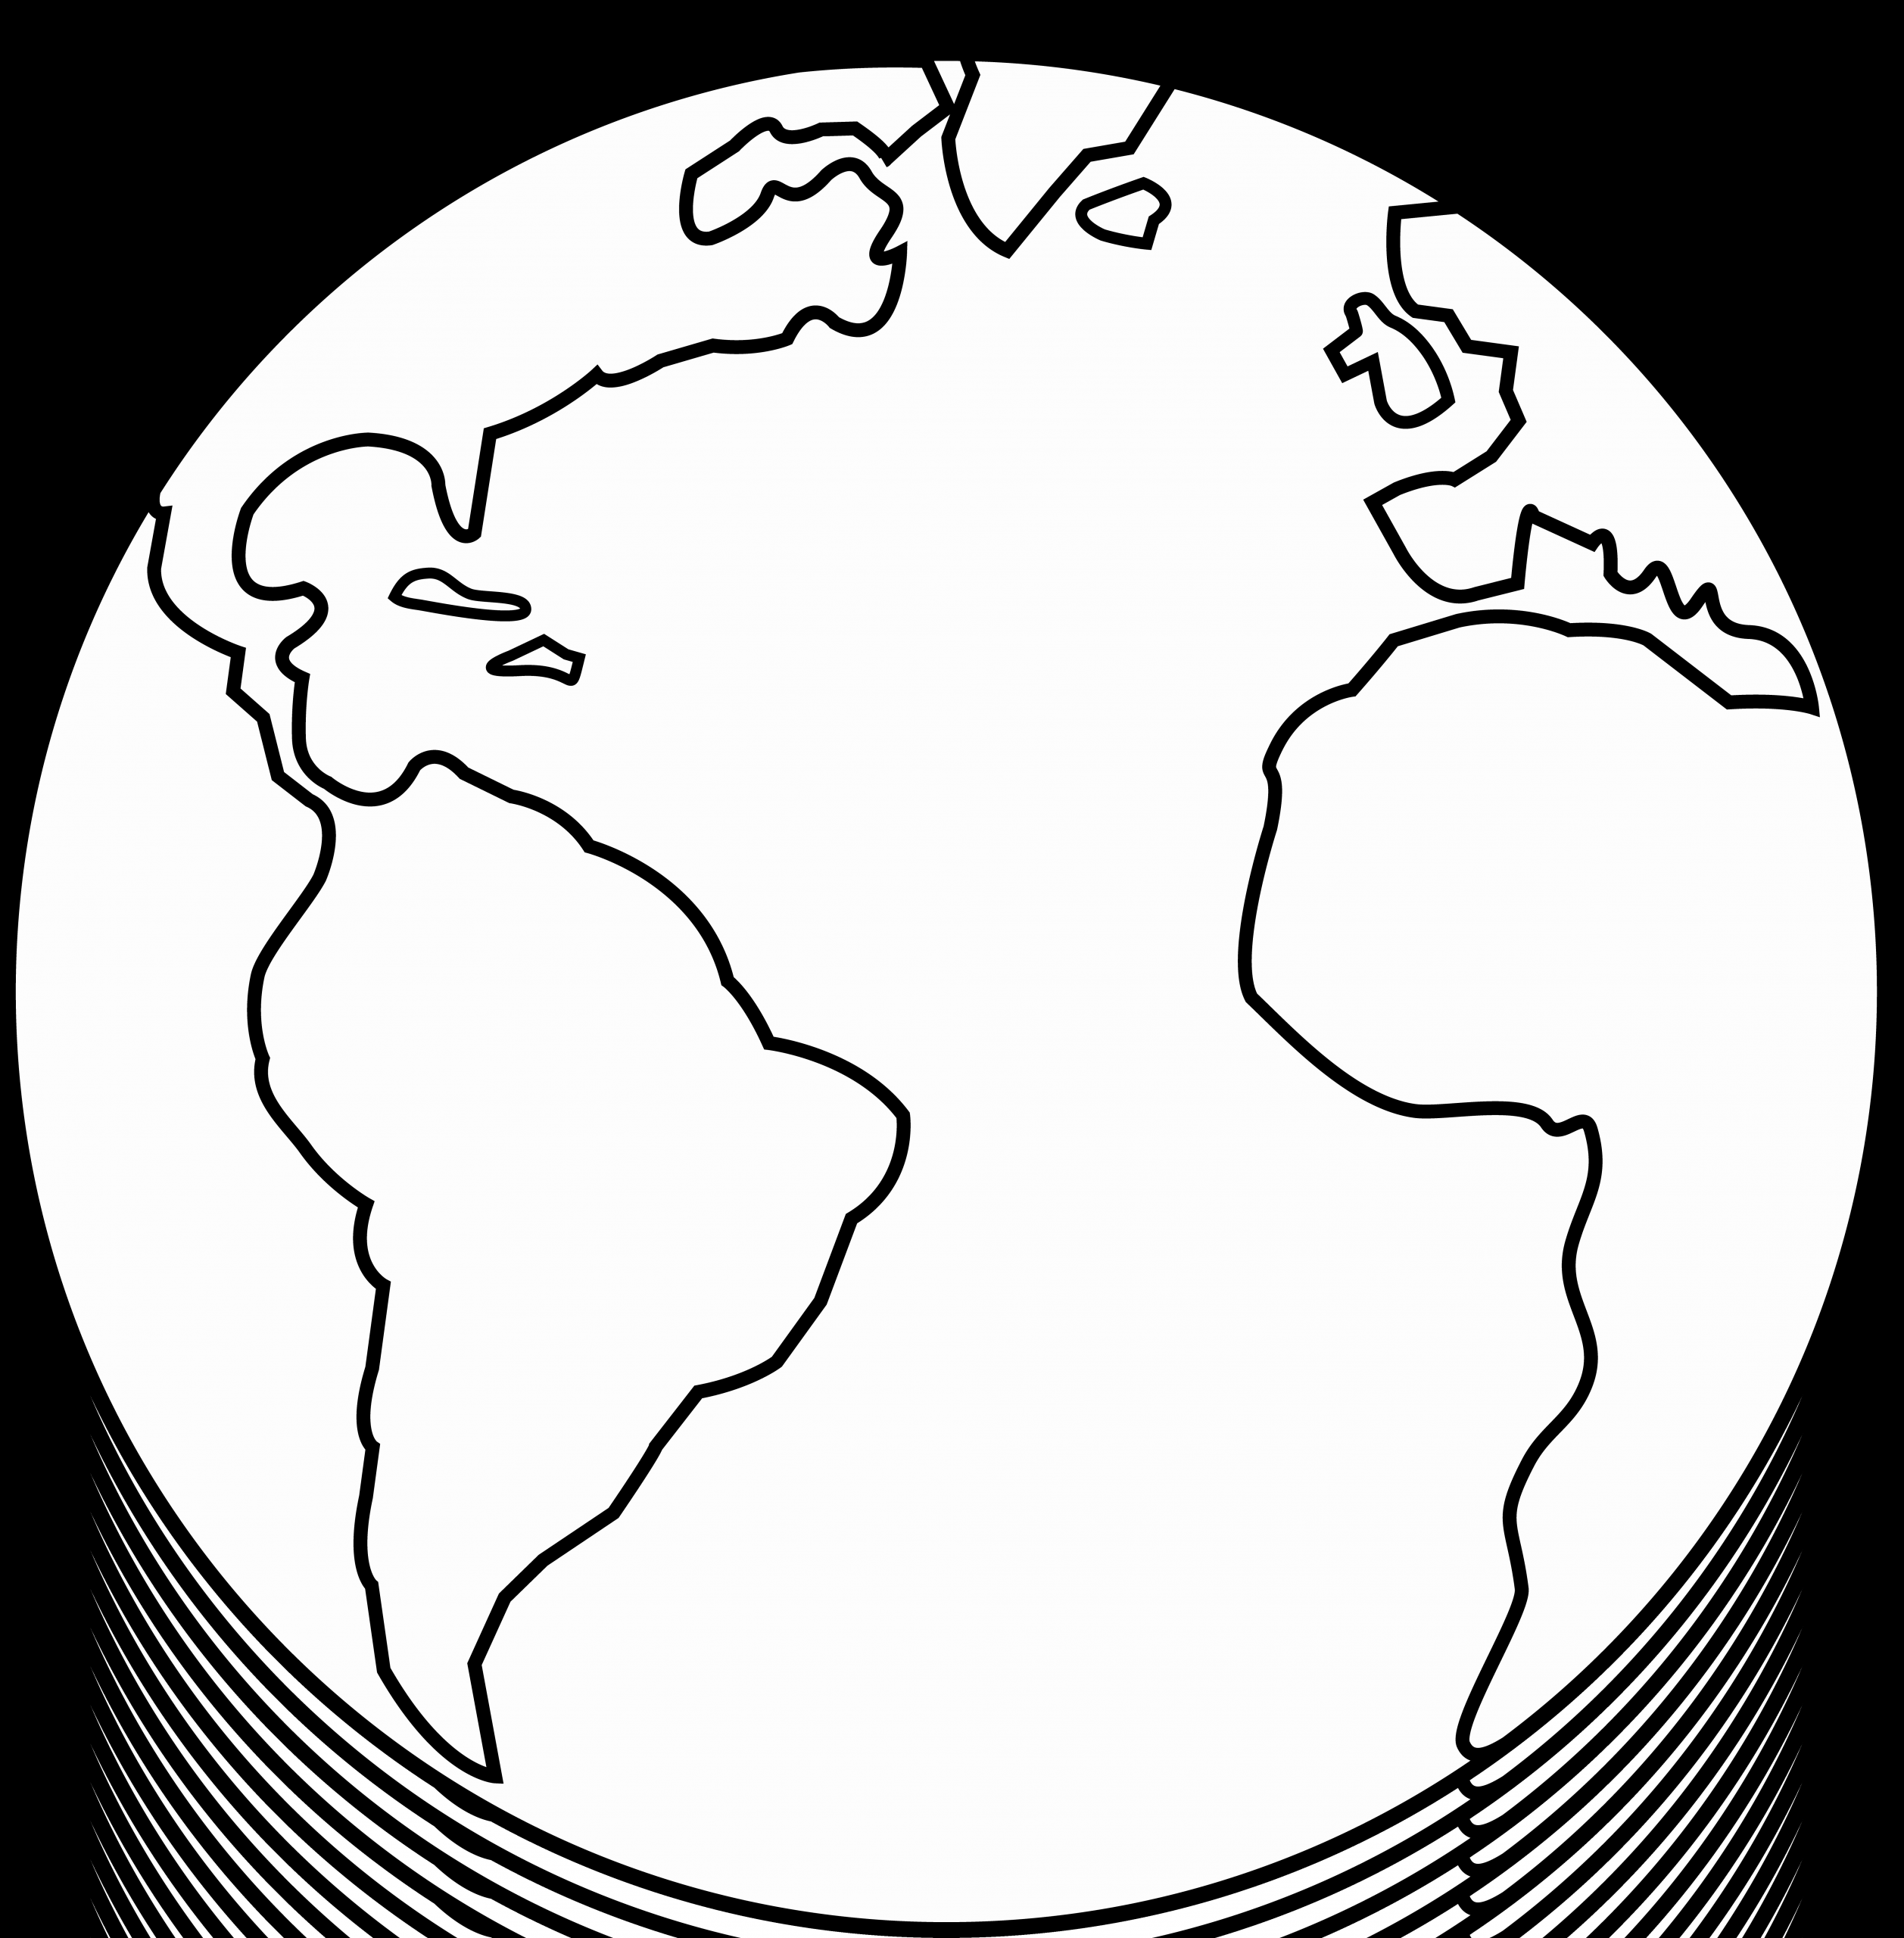 Planet Earth Coloring Page Inspirational Earth Clipart Black And White In 2020 Earth Coloring Pages Planet Coloring Pages Coloring Pages